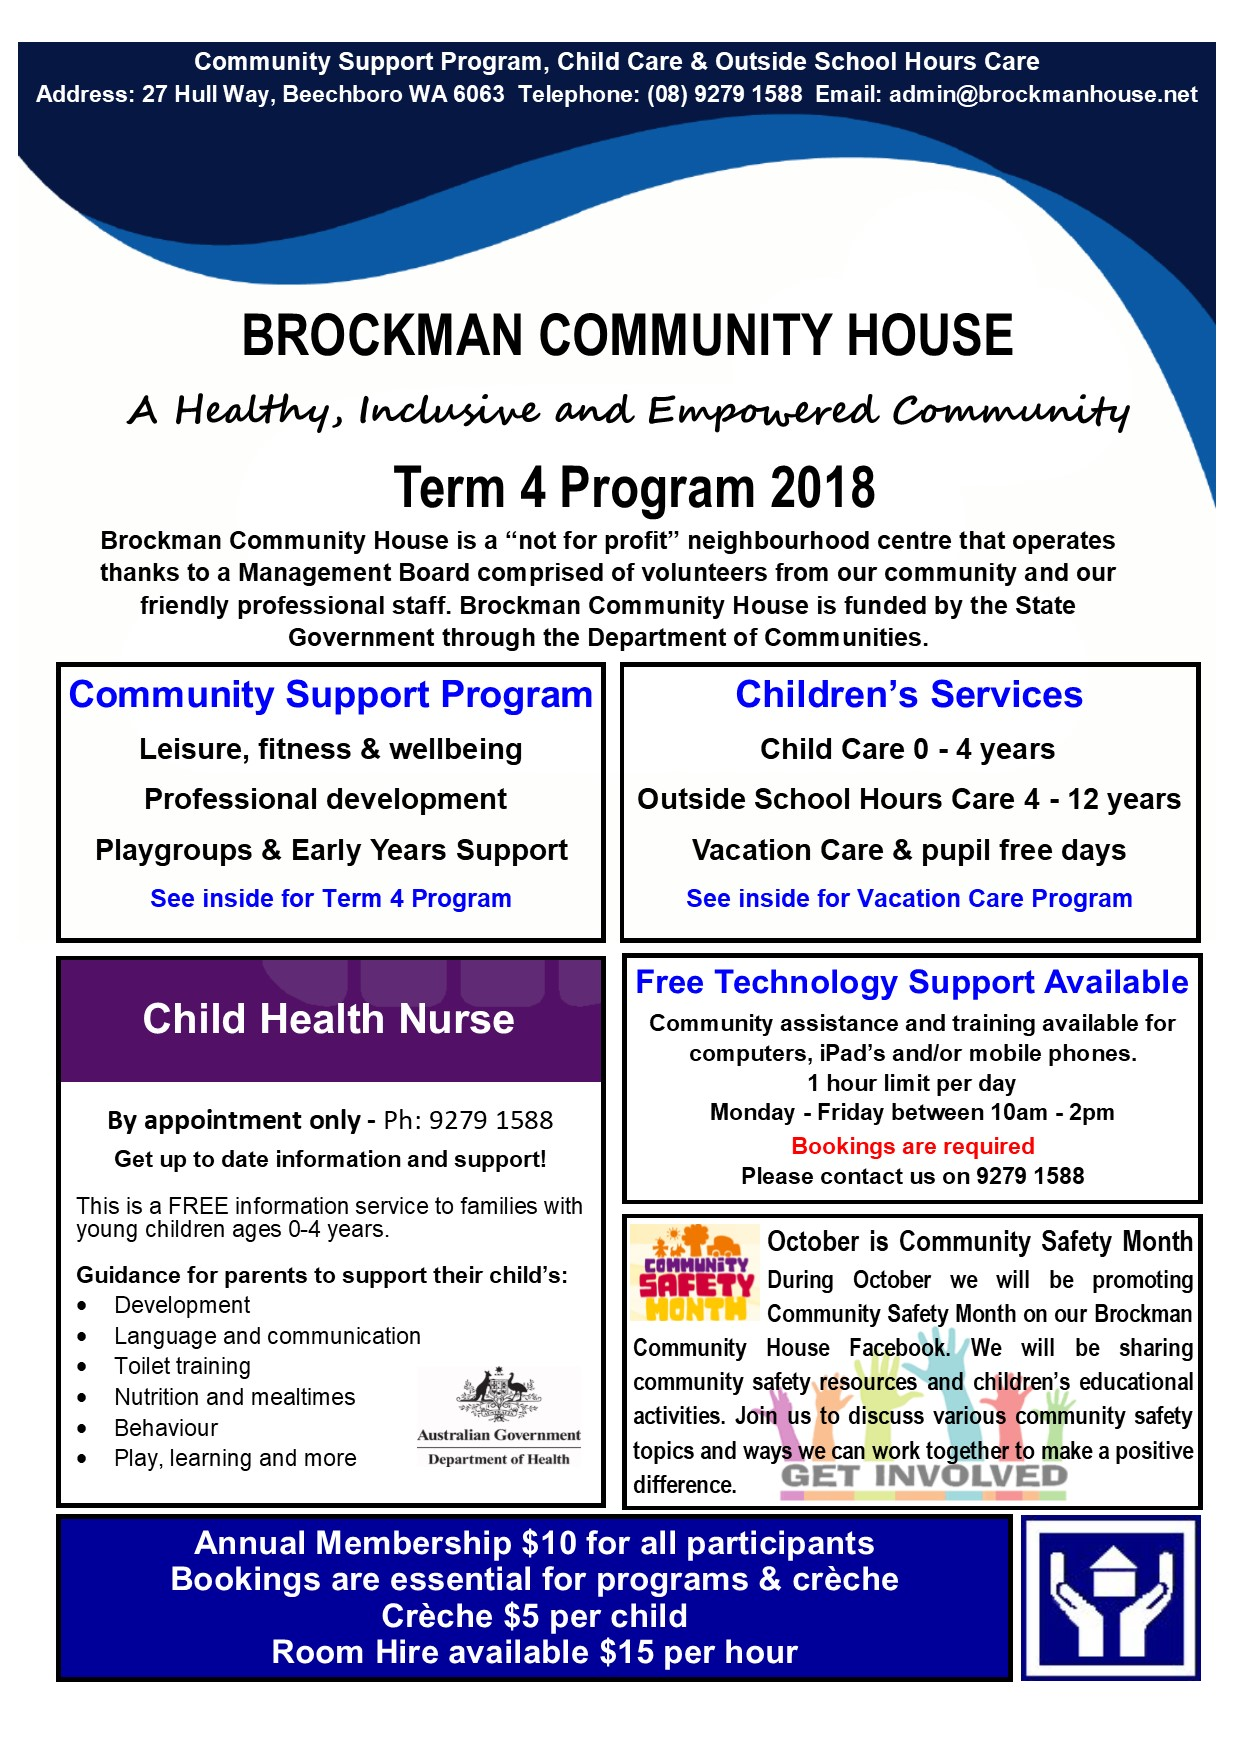 Brockman Community House Healthy Inclusive And Empowered